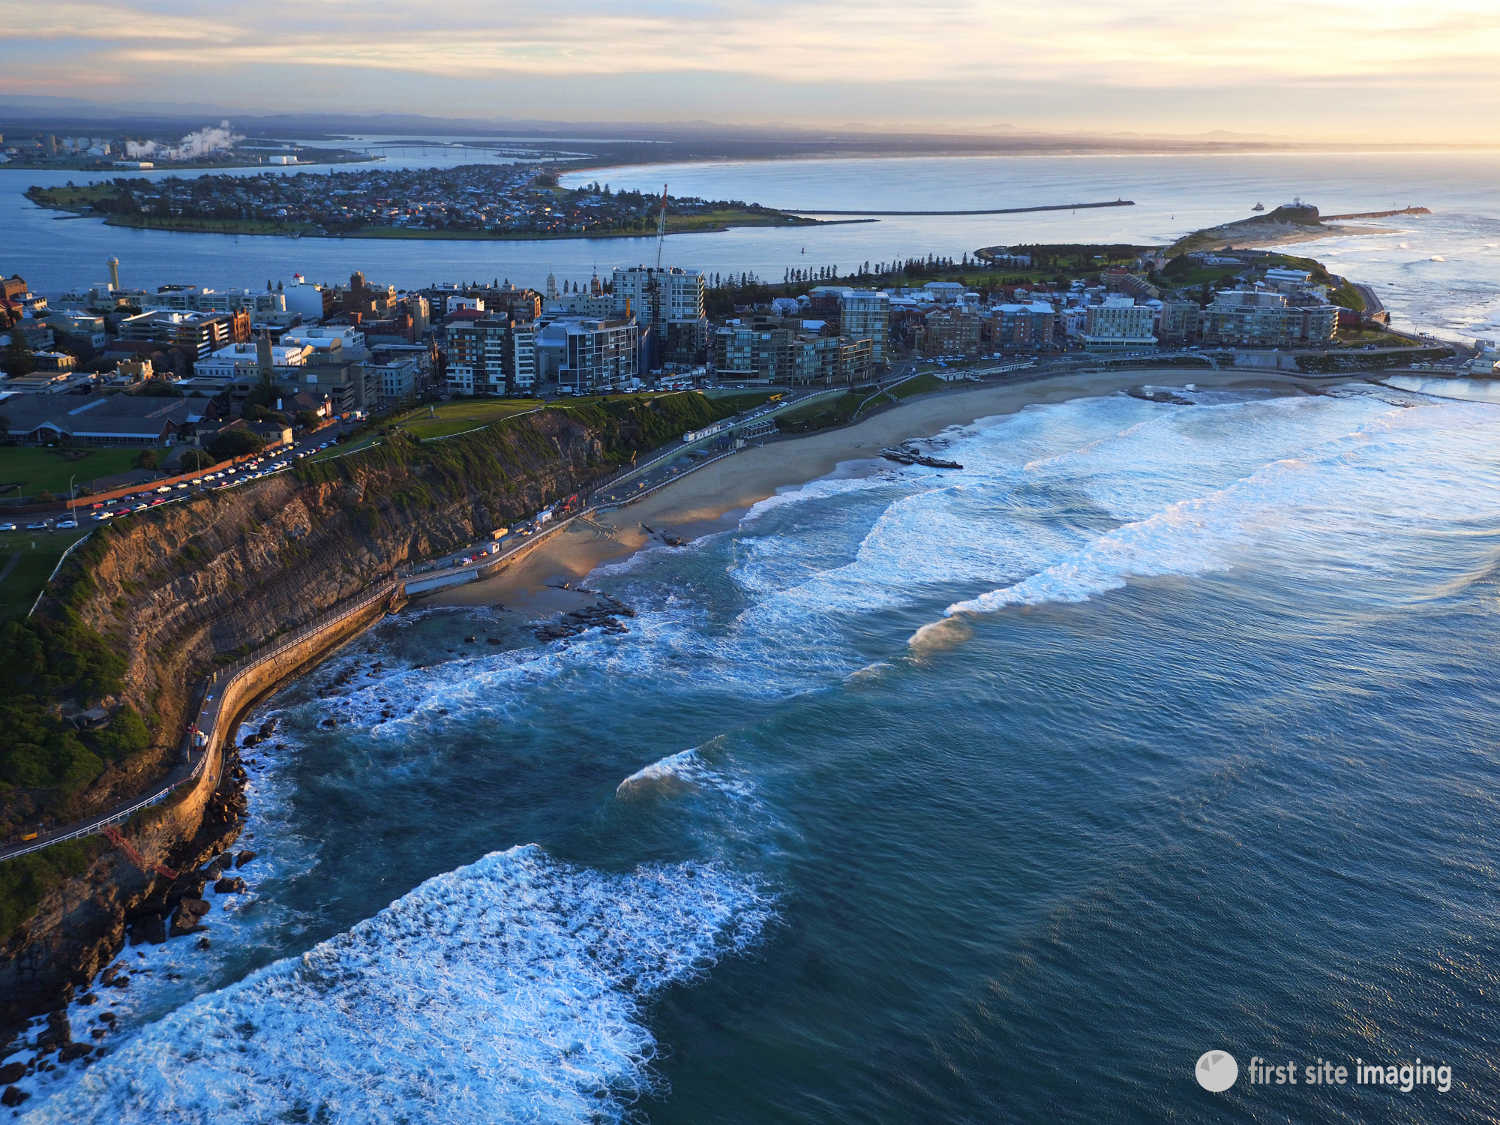 Drone Photograph Of Newcastle City Showing Beach Nobbys And Harbour In The Distance